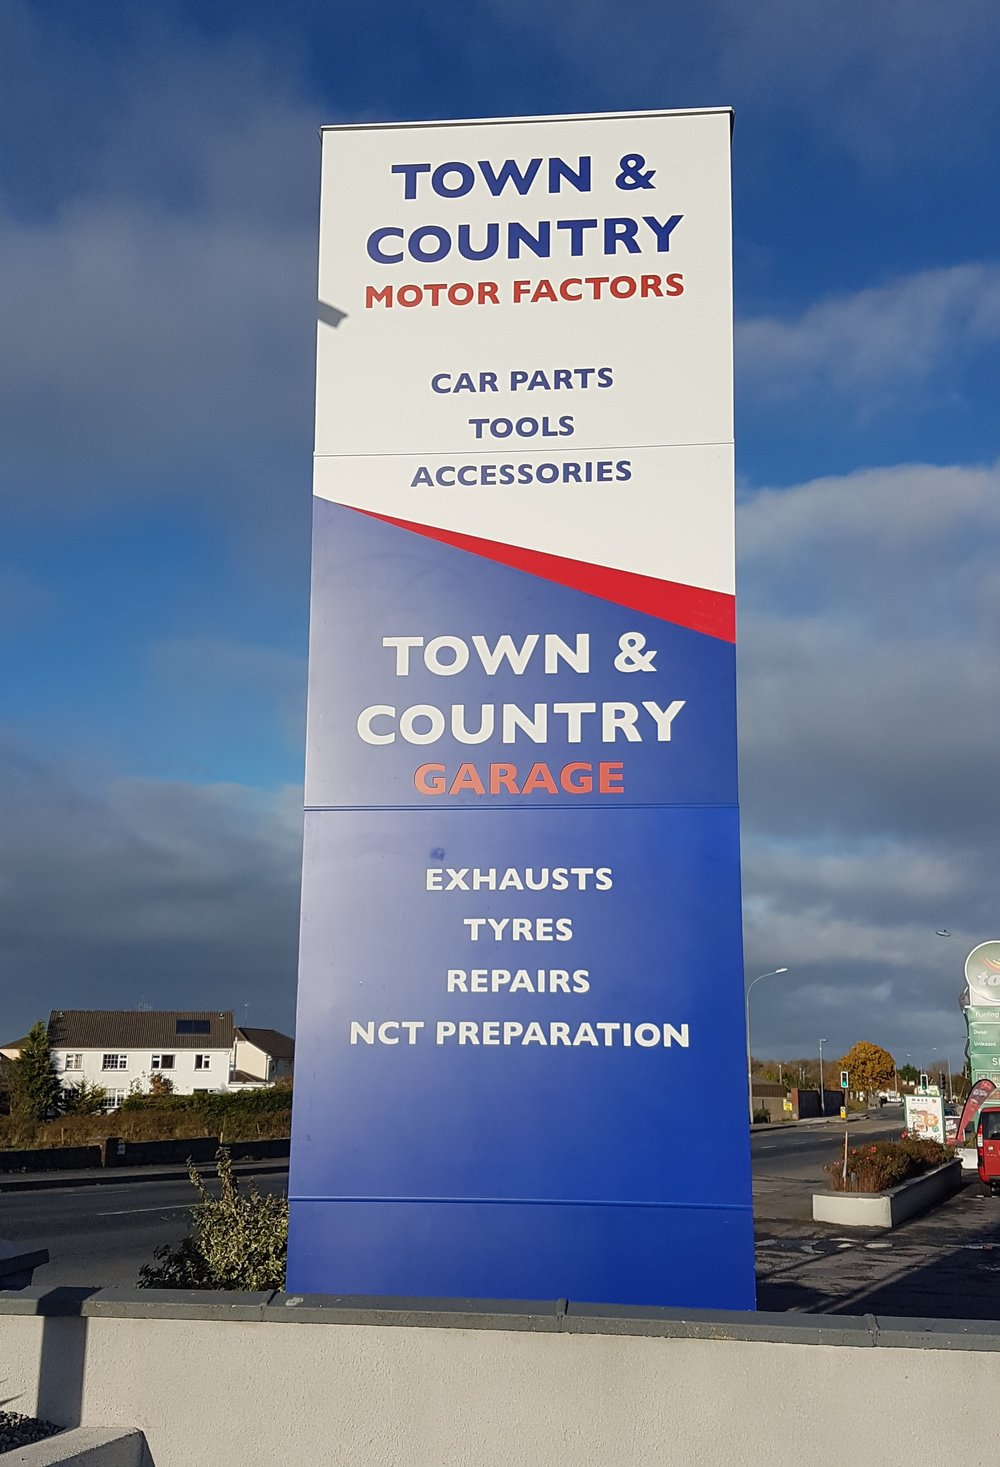 Town & Country Motor Factors, Tuam